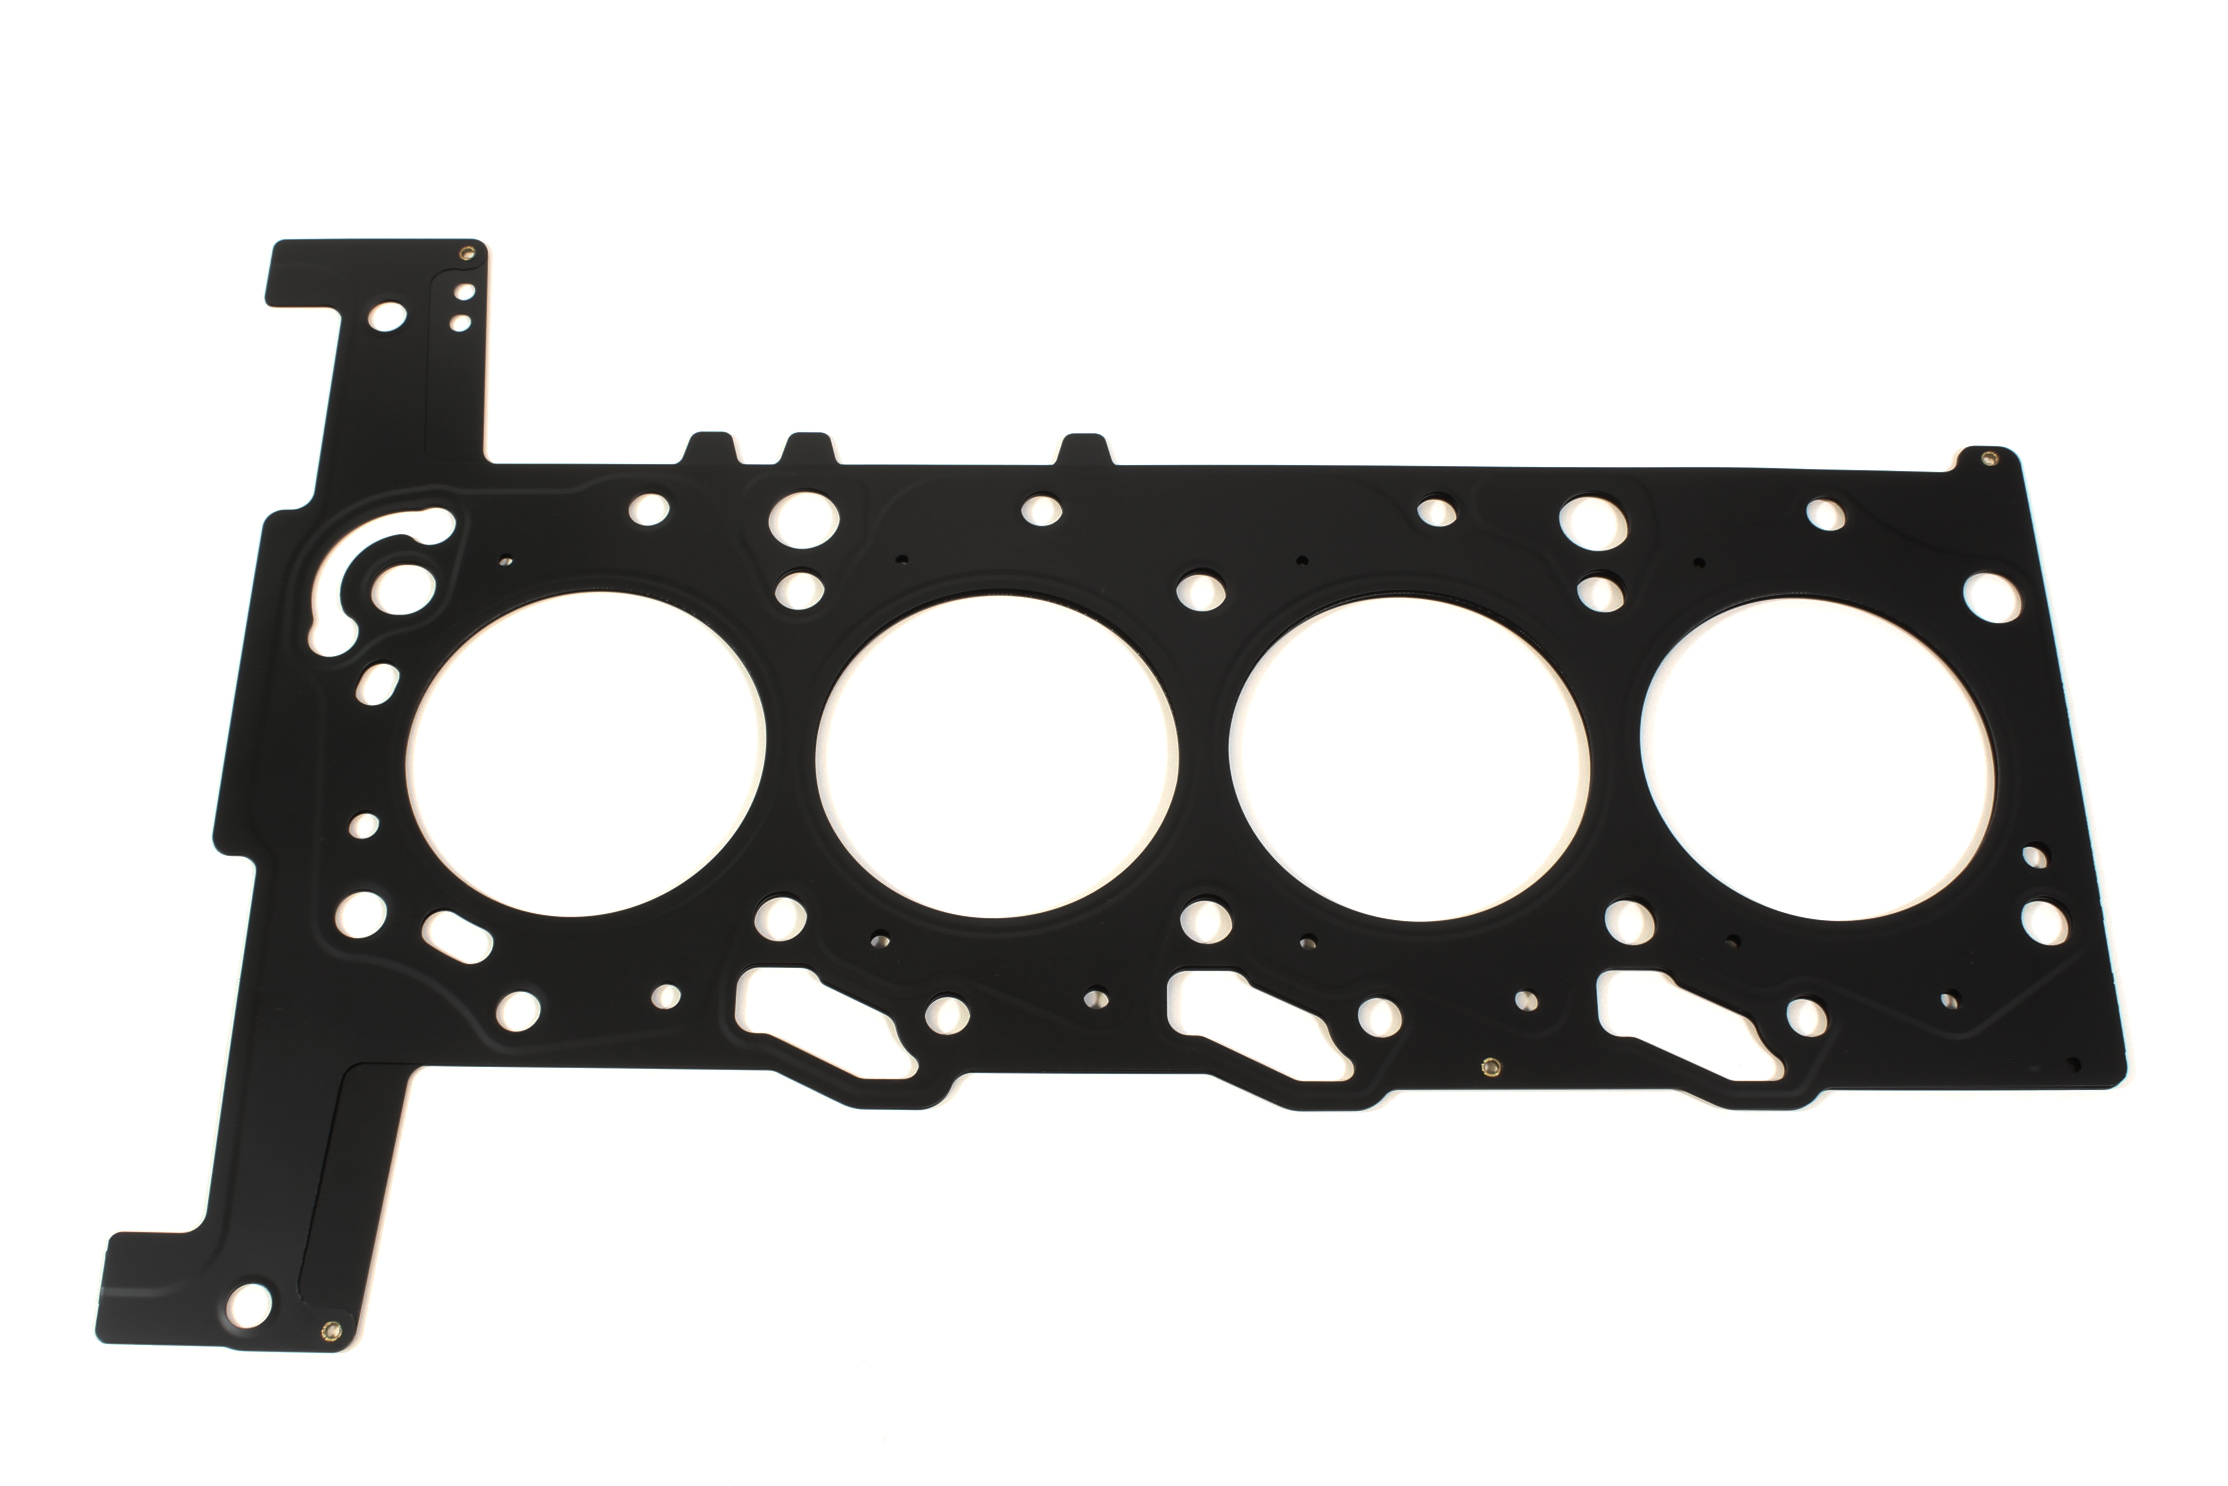 The cylinder head gasket Seal for Peugeot Citroen Fiat Ford 2.2 HDI 4HG 4HH 4HJ NEW